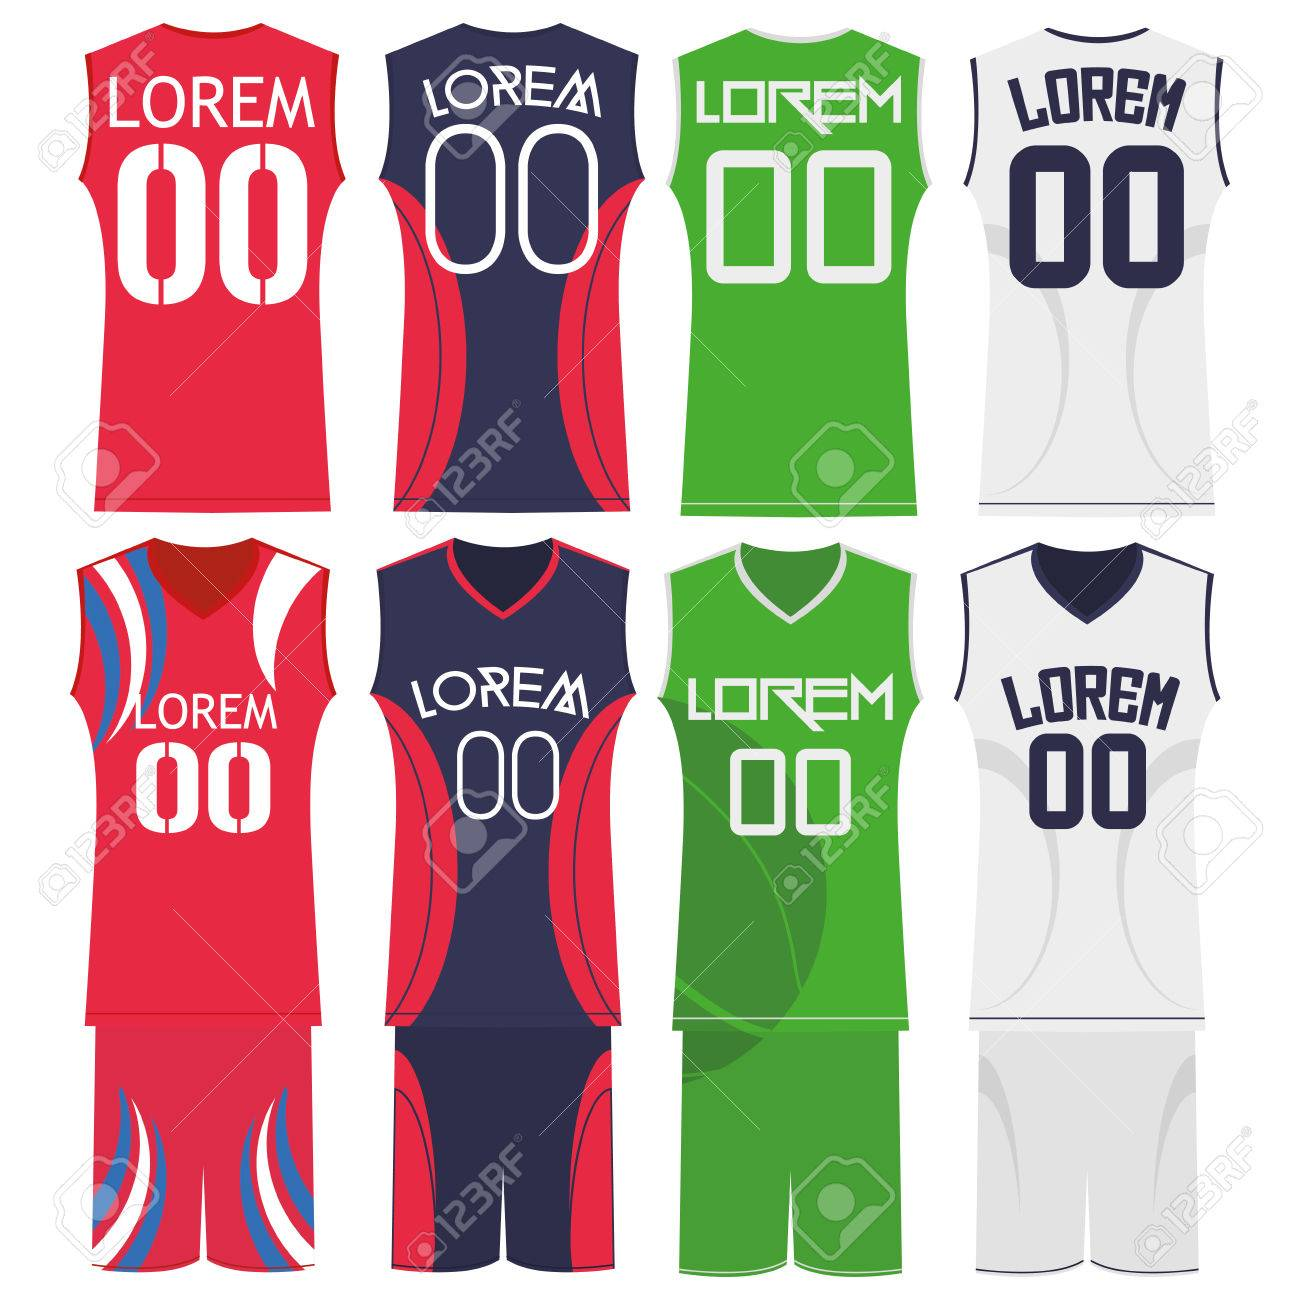 582d4fe7031d Vector Basketball Uniforms Isolated On White Background Stock Vector -  29529401